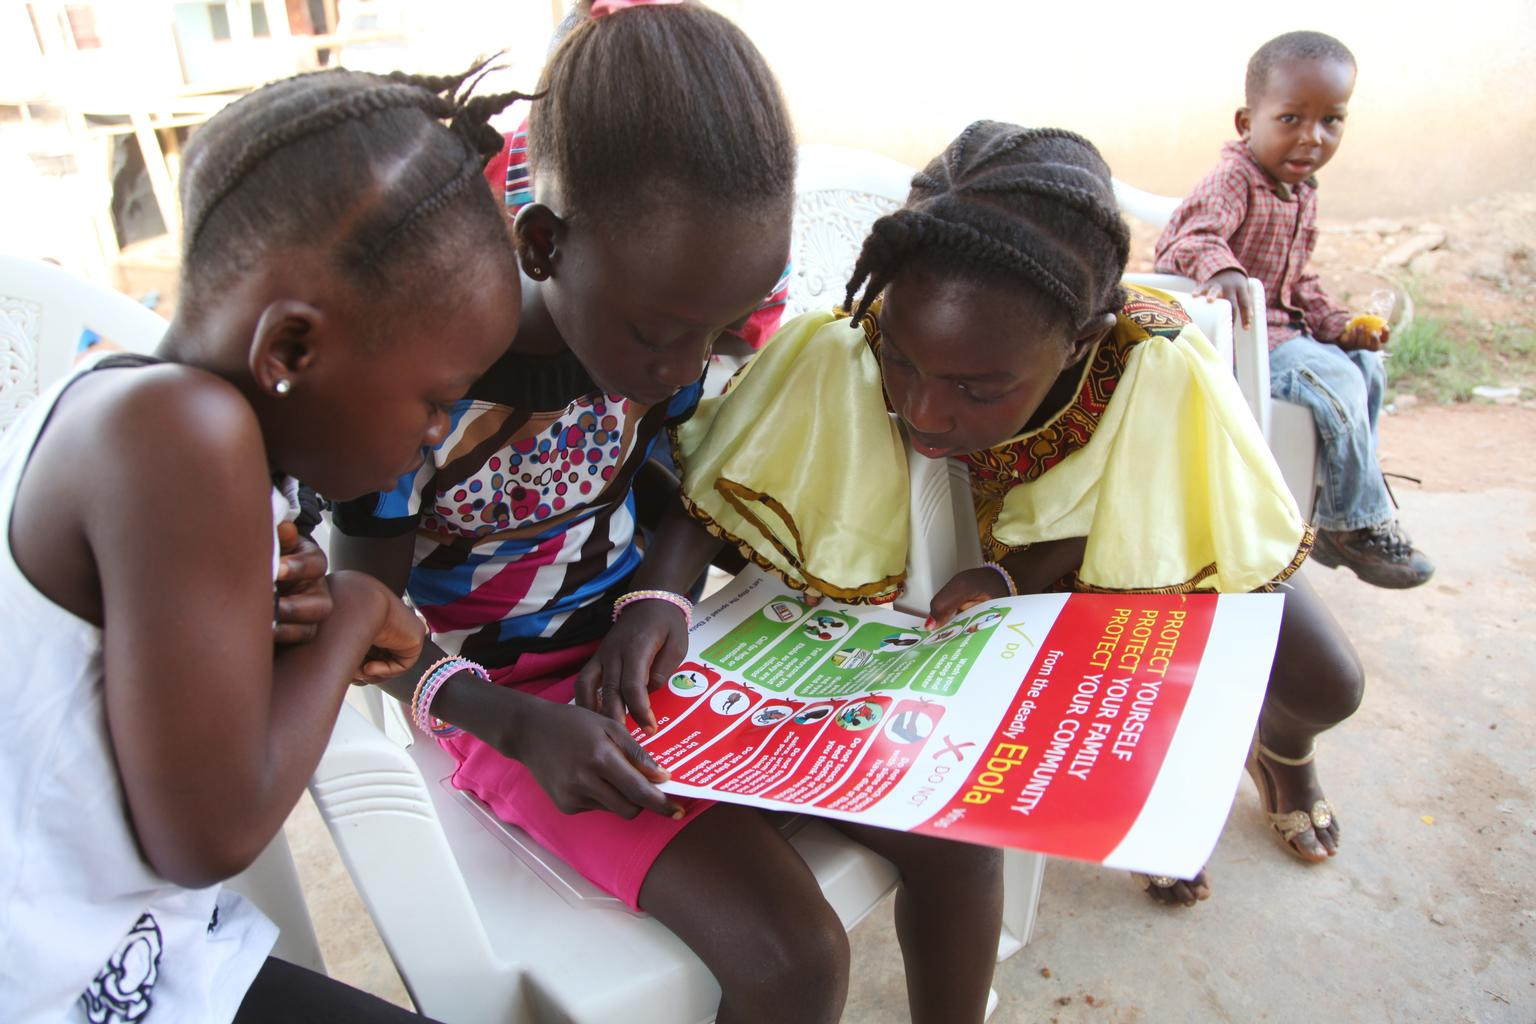 In April 2014 in Liberia, girls look at a poster, distributed by UNICEF, bearing information on and illustrations of best practices that help prevent the spread of Ebola virus disease (EVD), in the city of Voinjama, in Lofa County.